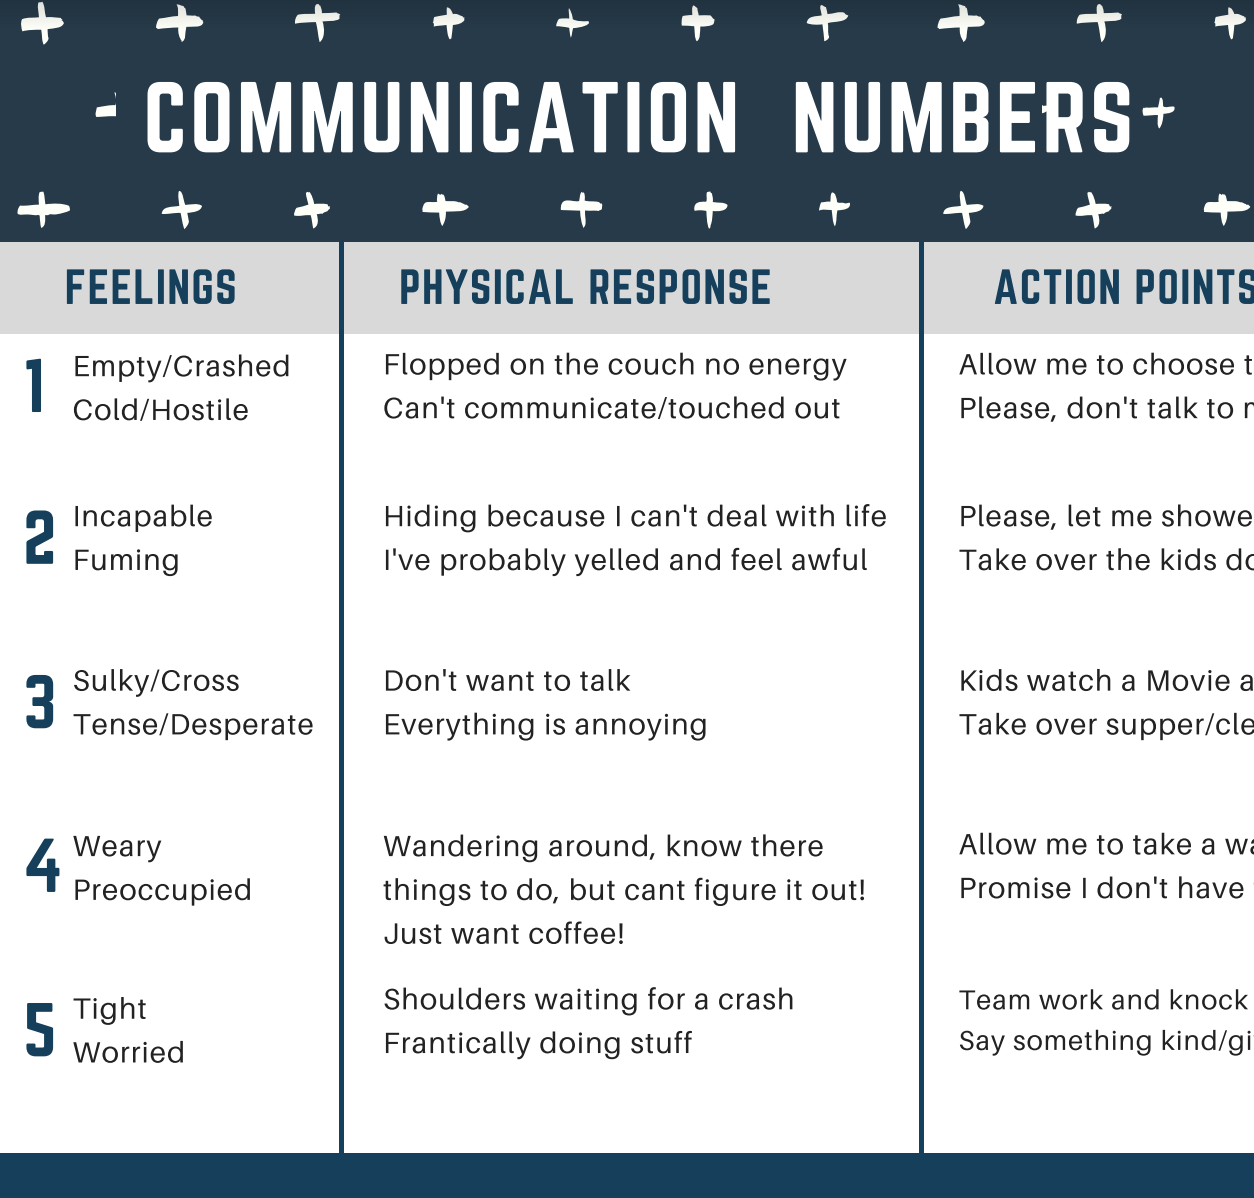 Spouses Communication Numbers